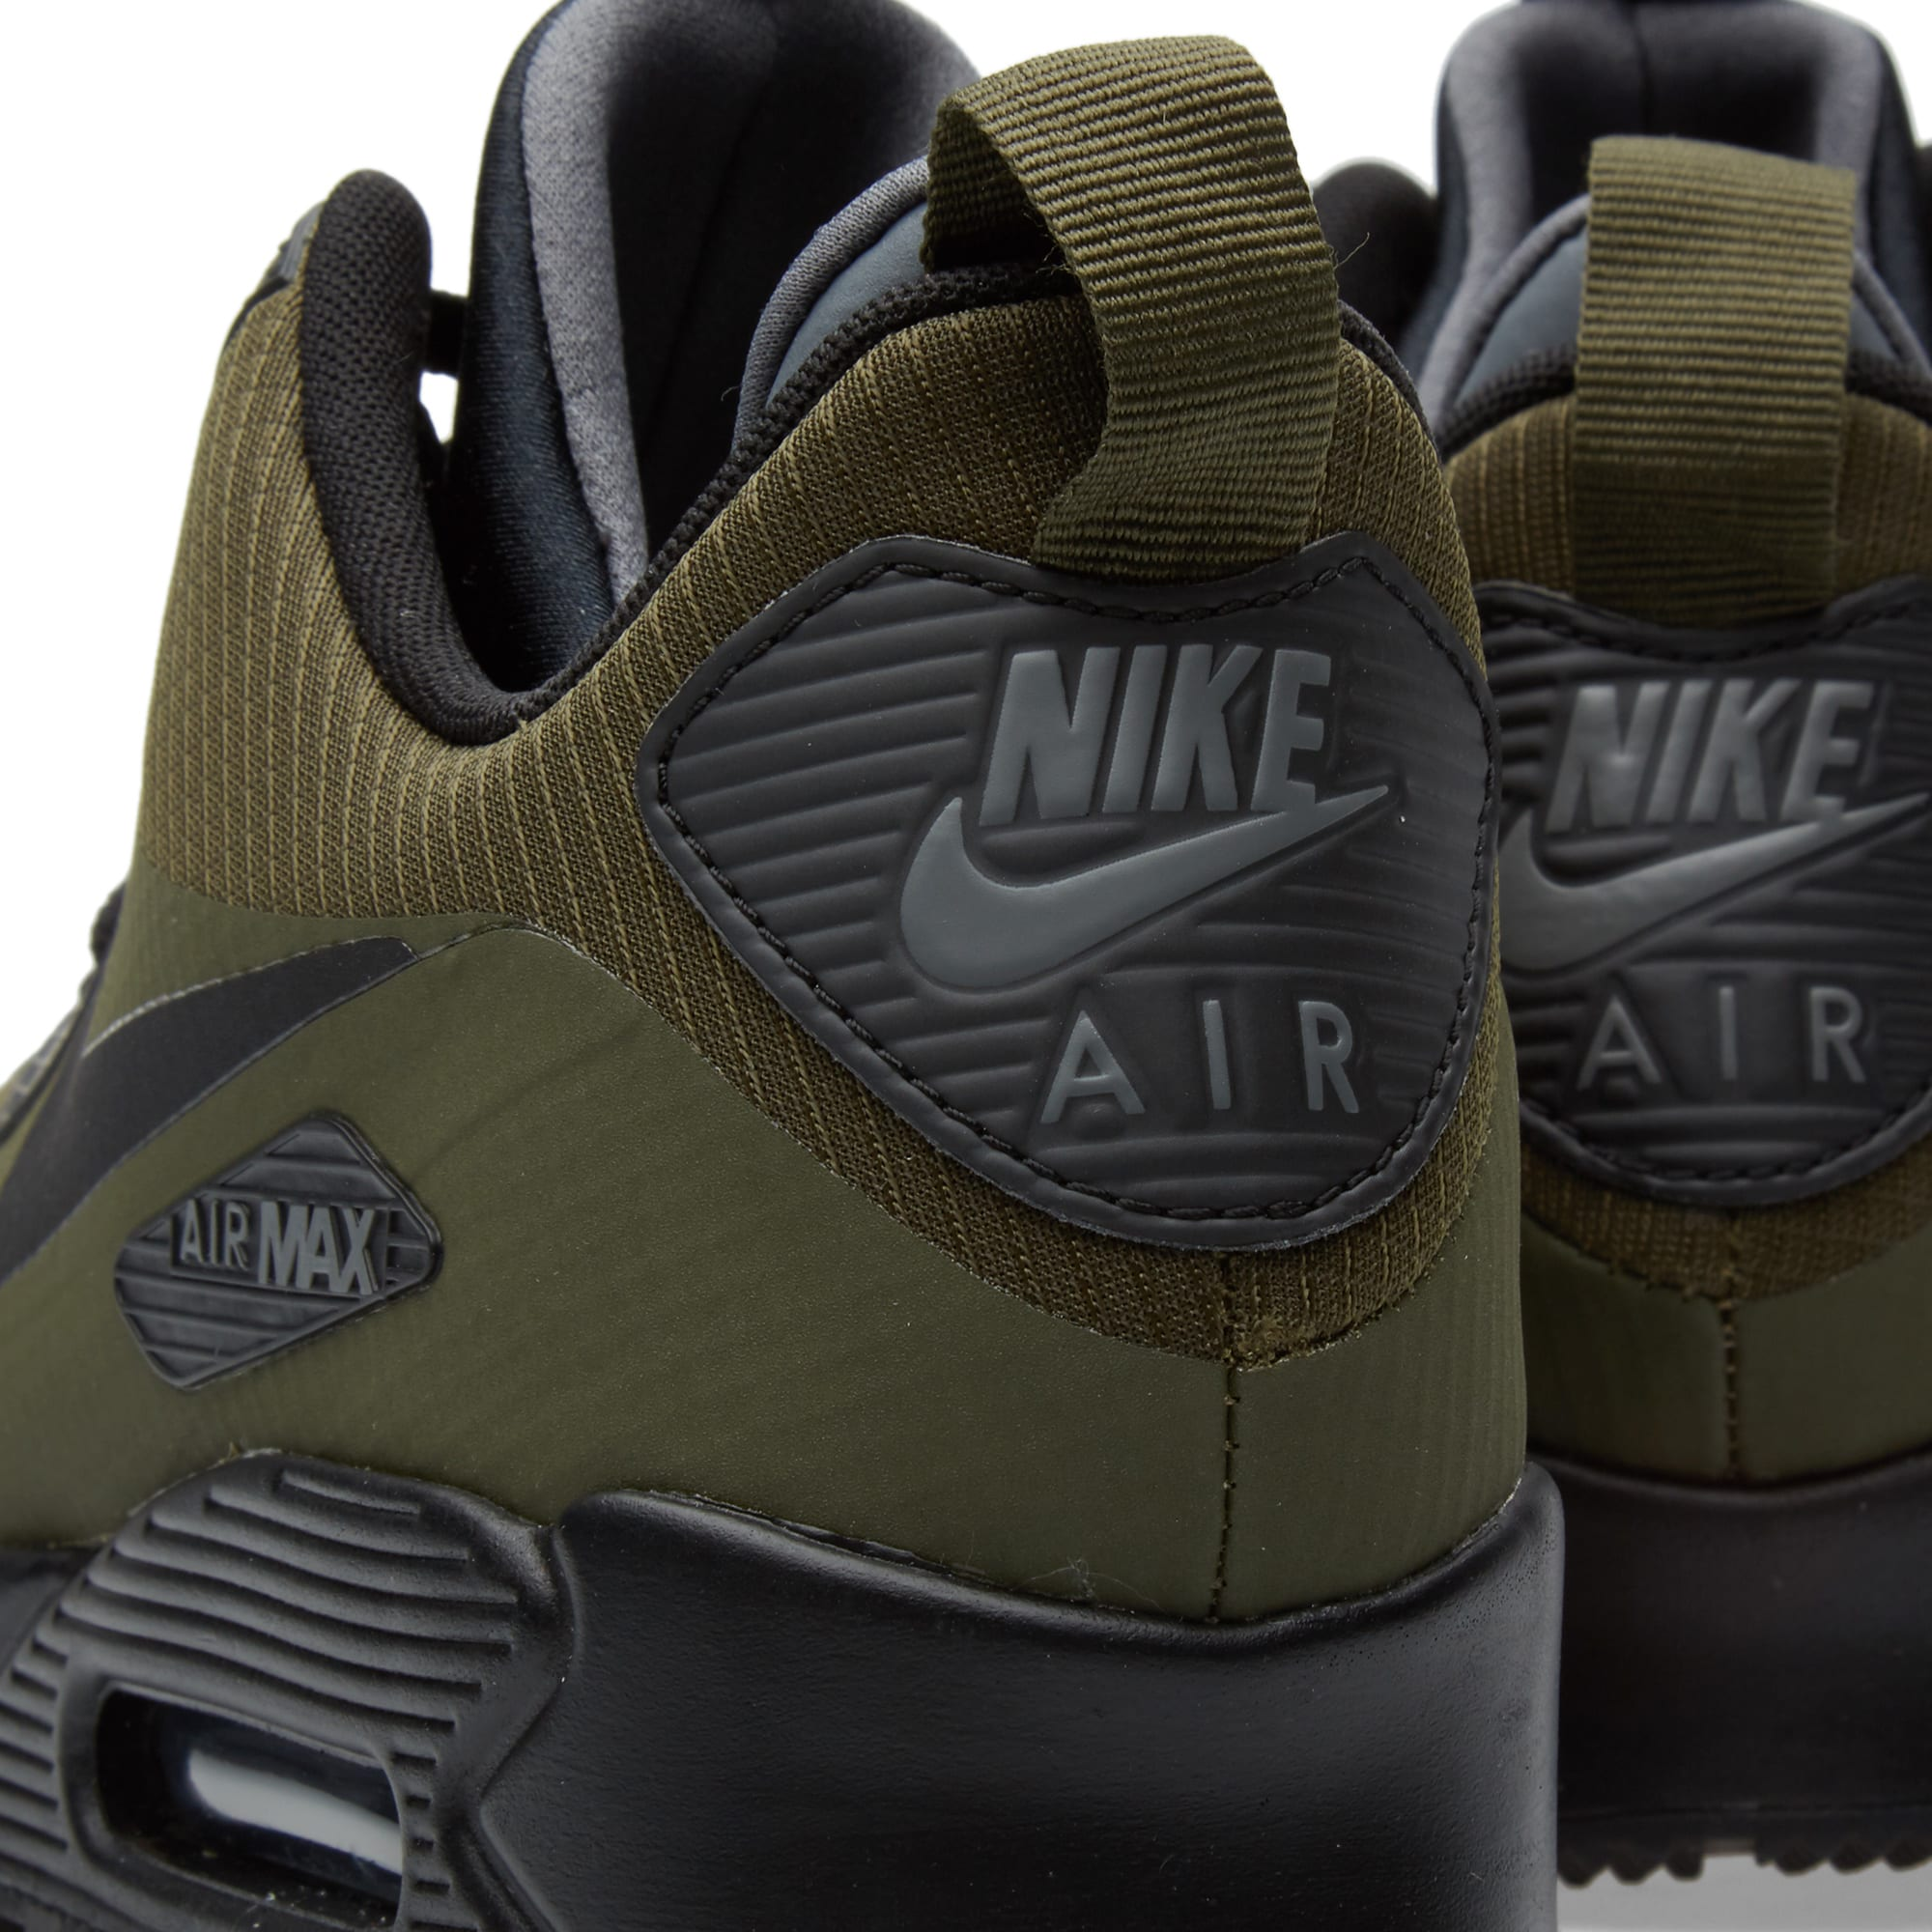 best loved 4bf55 e9fdc Nike Air Max 90 Mid Winter Dark Loden   Black   END.